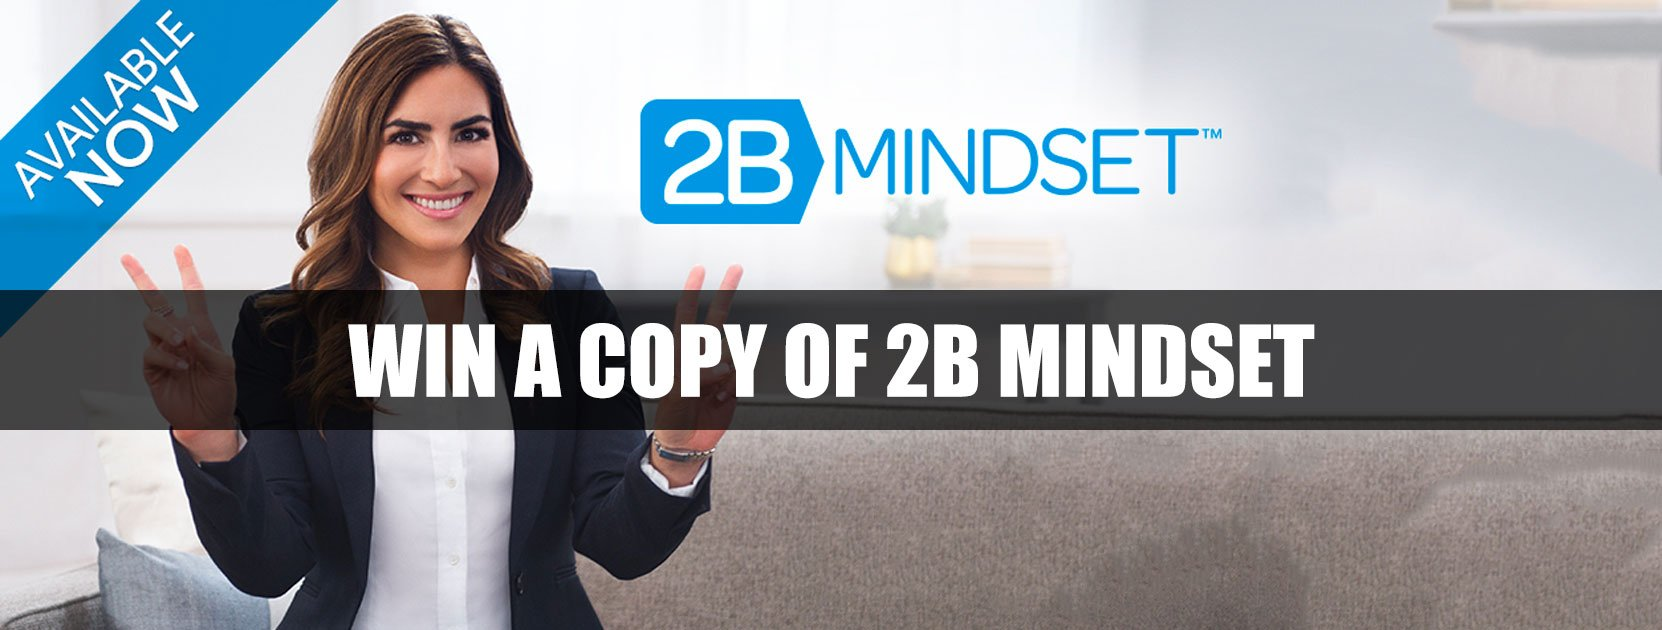 Win a copy of 2B Mindset